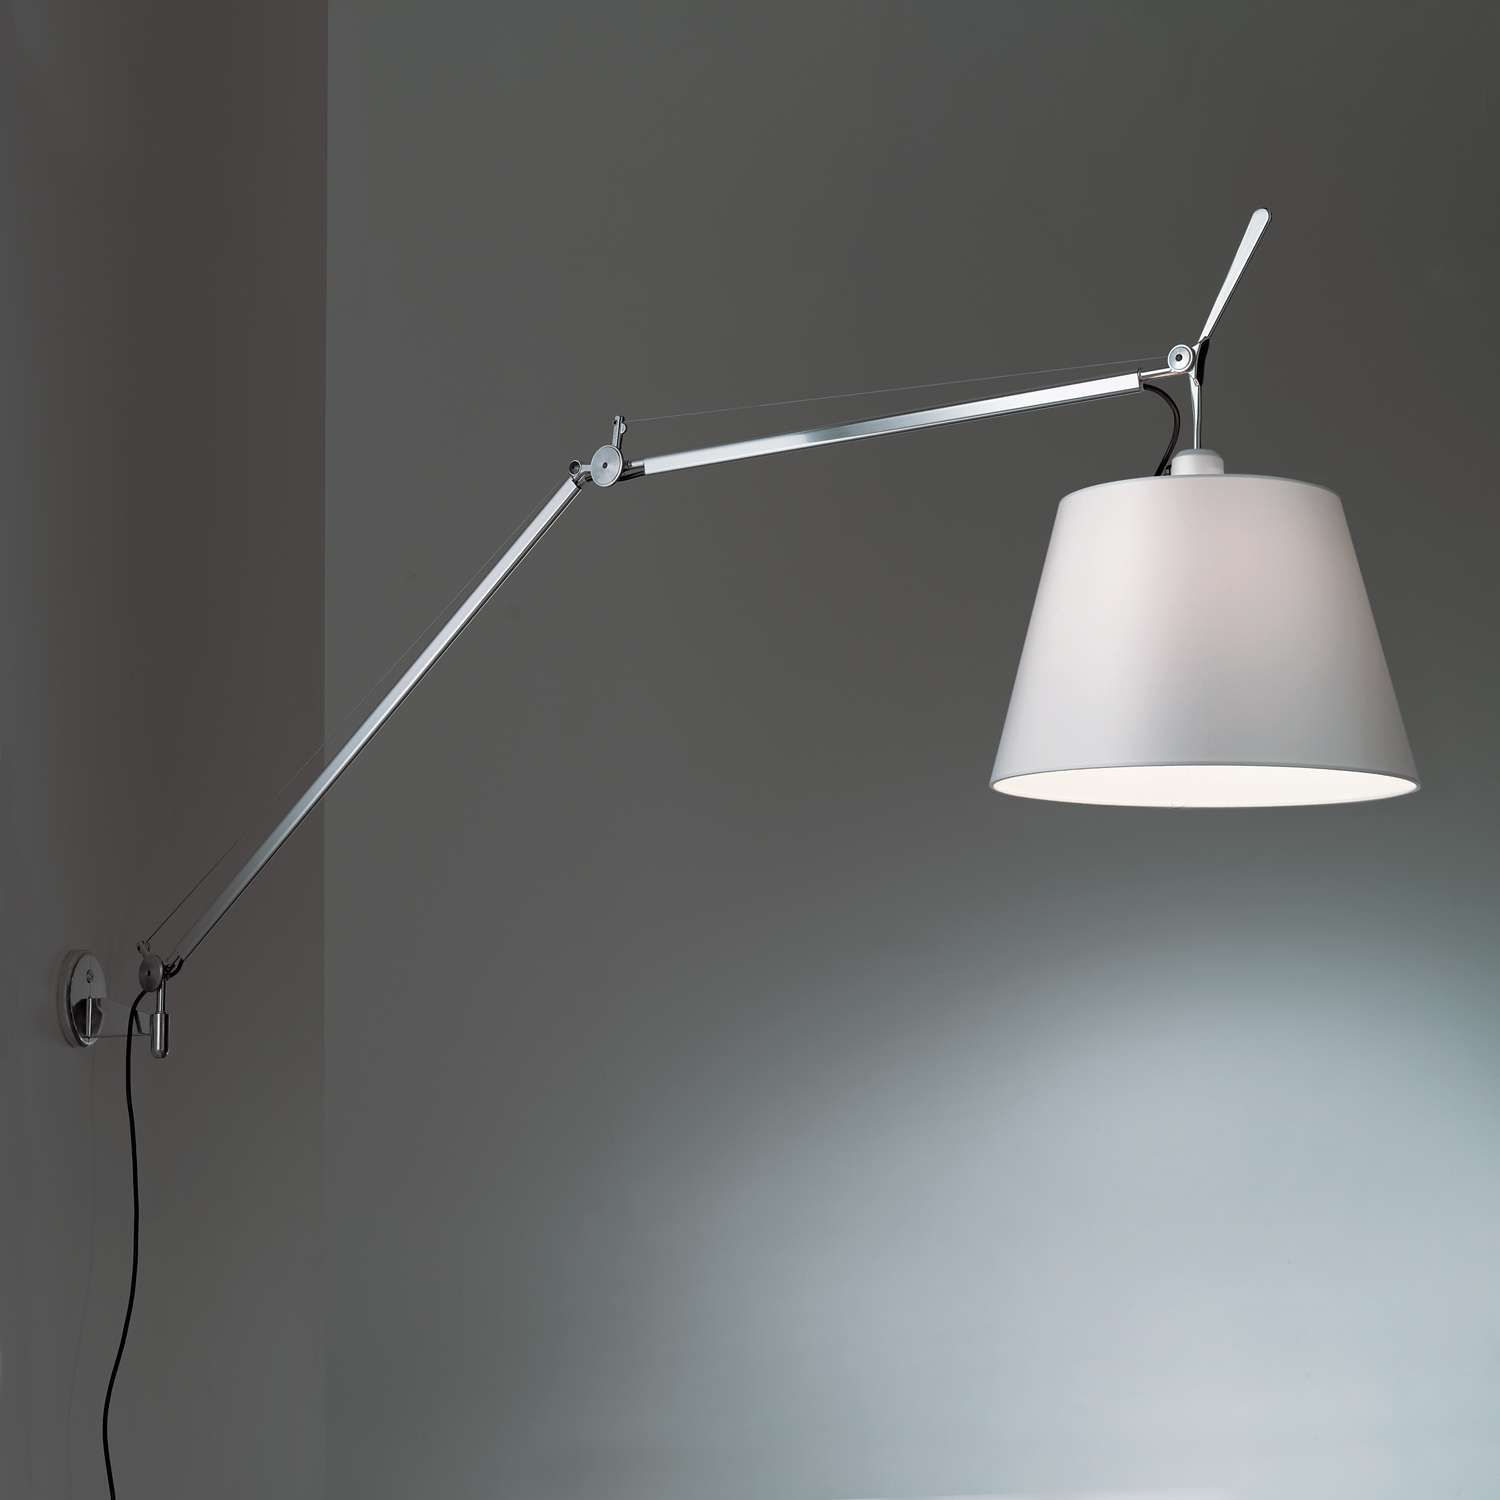 Tolomeo Artemide Lighting Lamps Chandeliers Wall Lights Tolomeo Lamp Lamp Modern Office Lighting